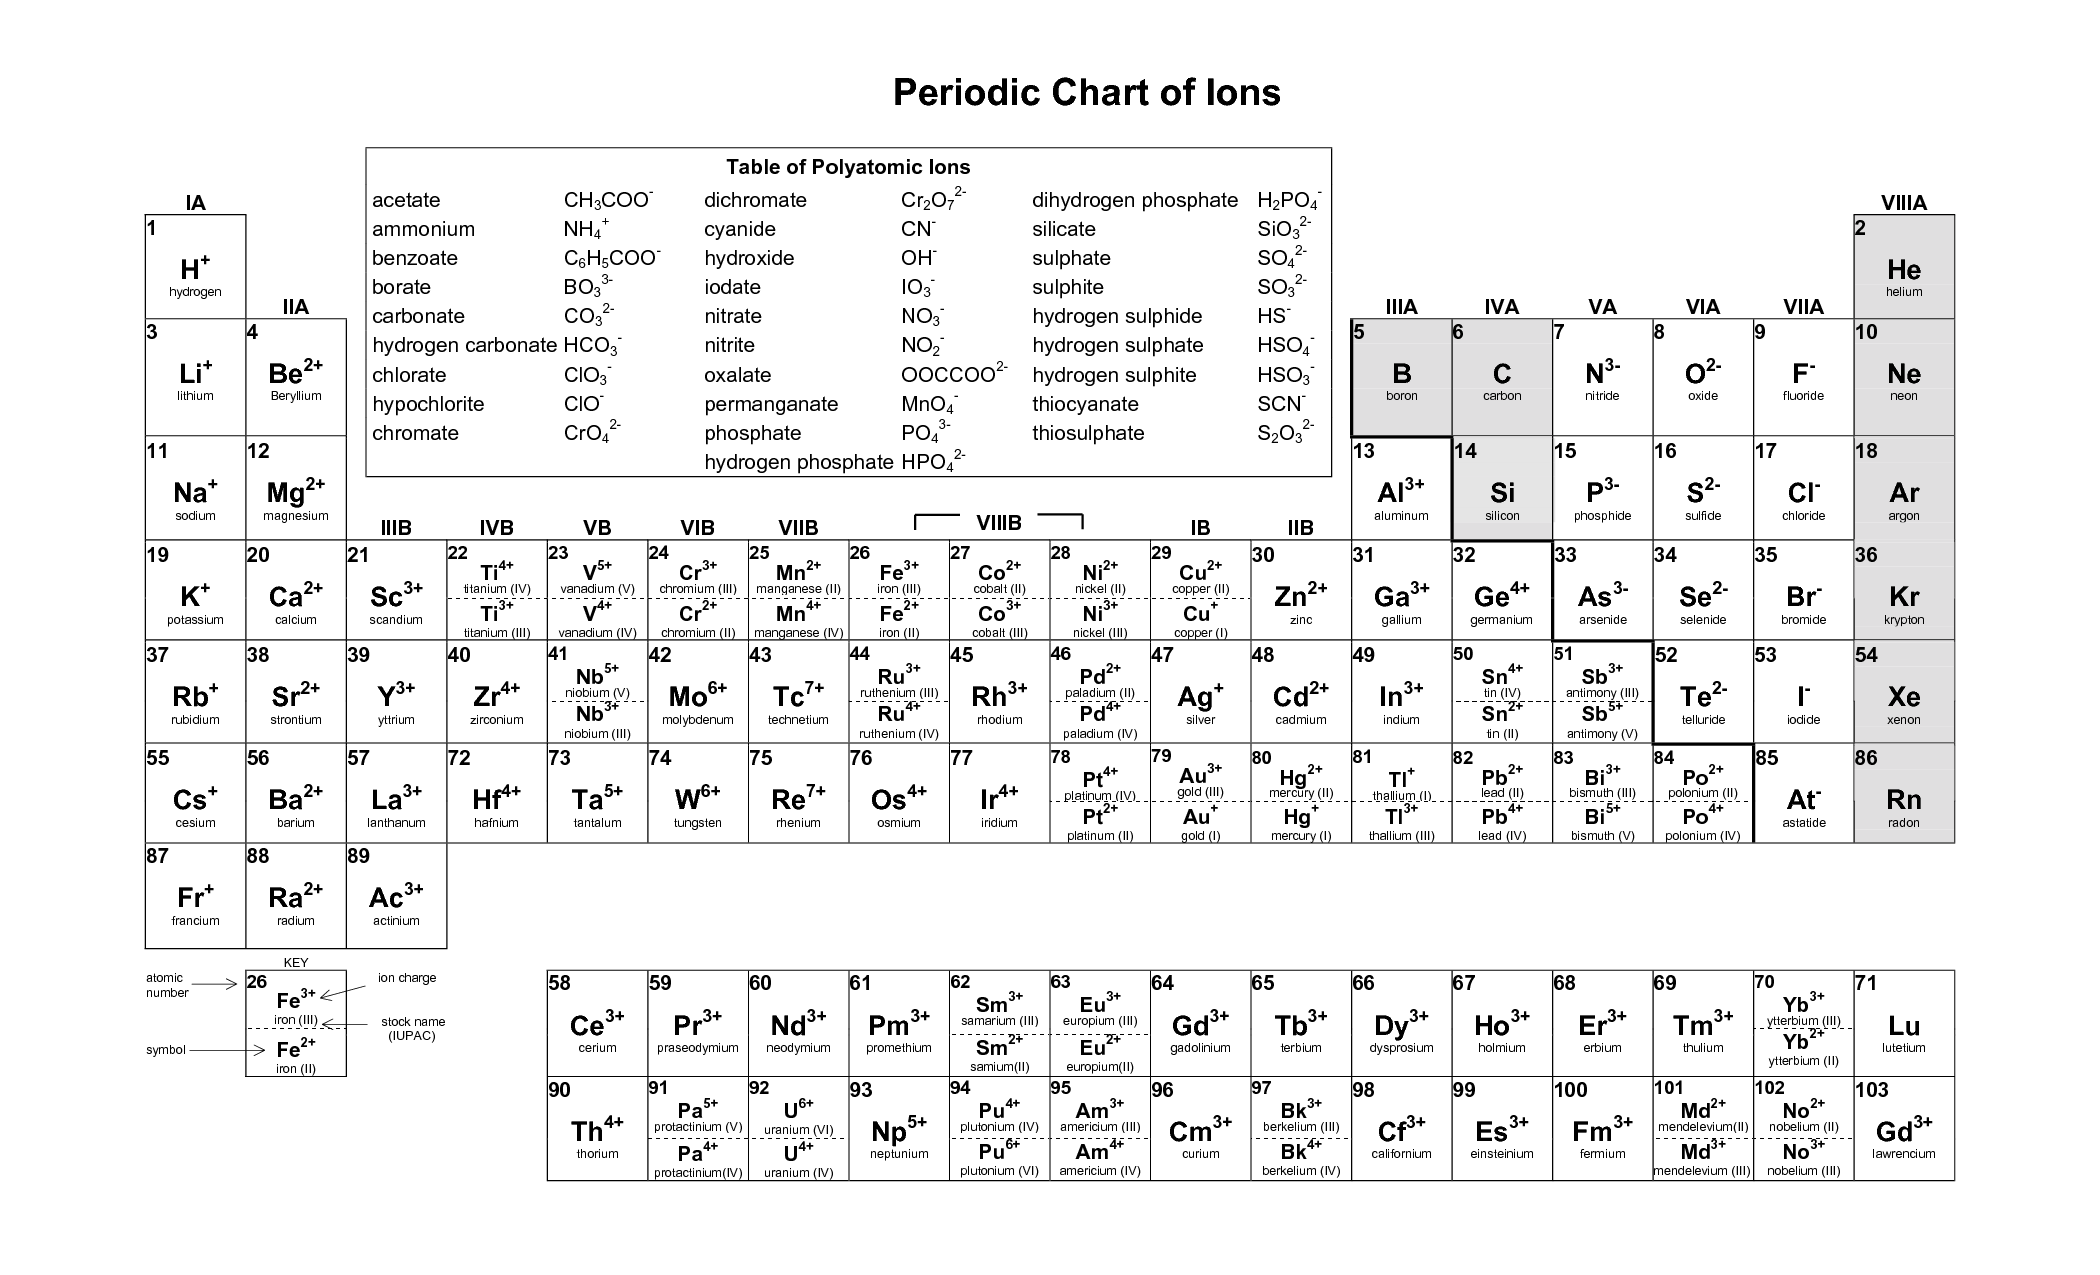 Periodic Table Of Ions Printable Periodic Chart Of Ions